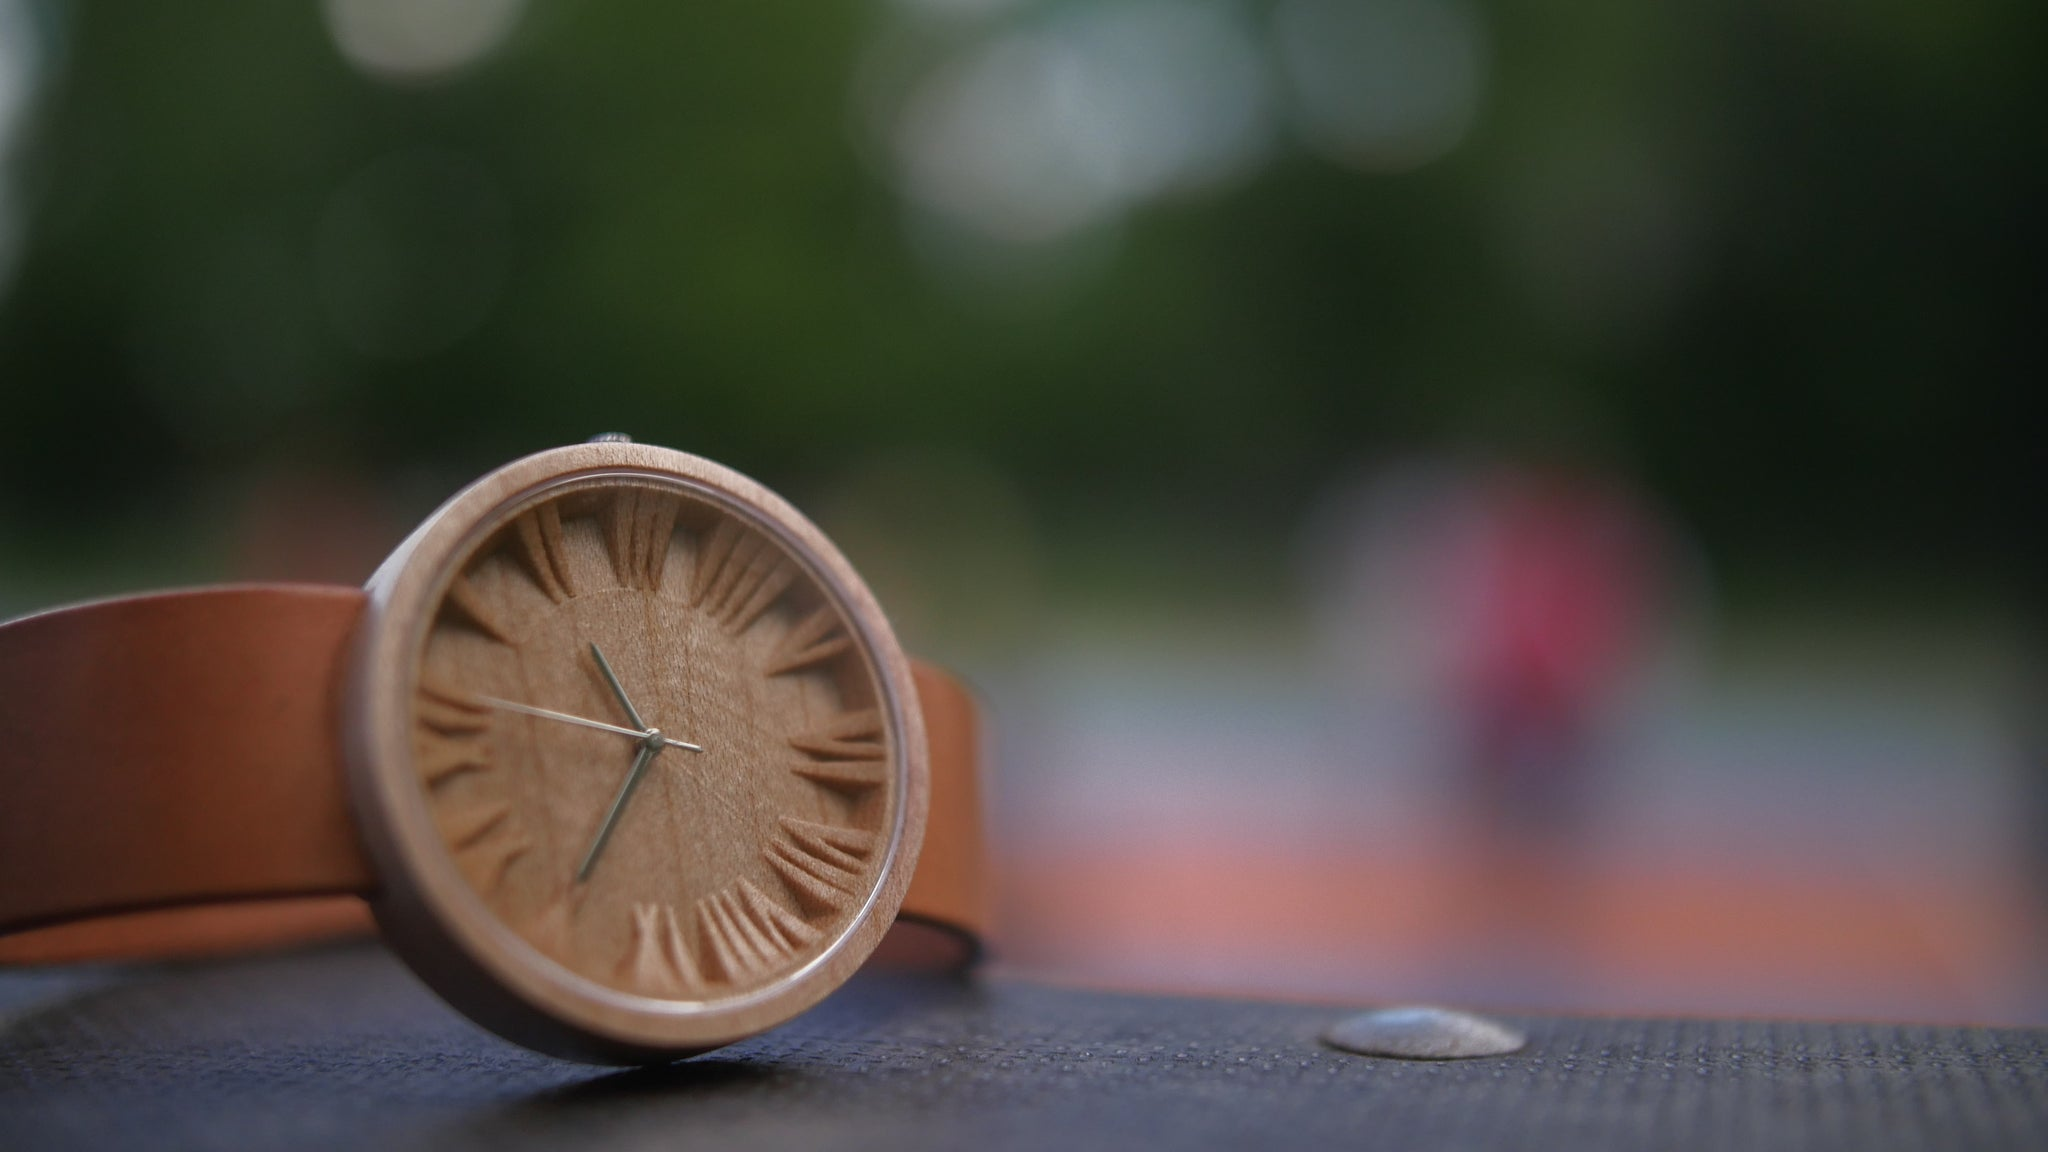 Benefits of Using Eco Friendly Wooden Watches